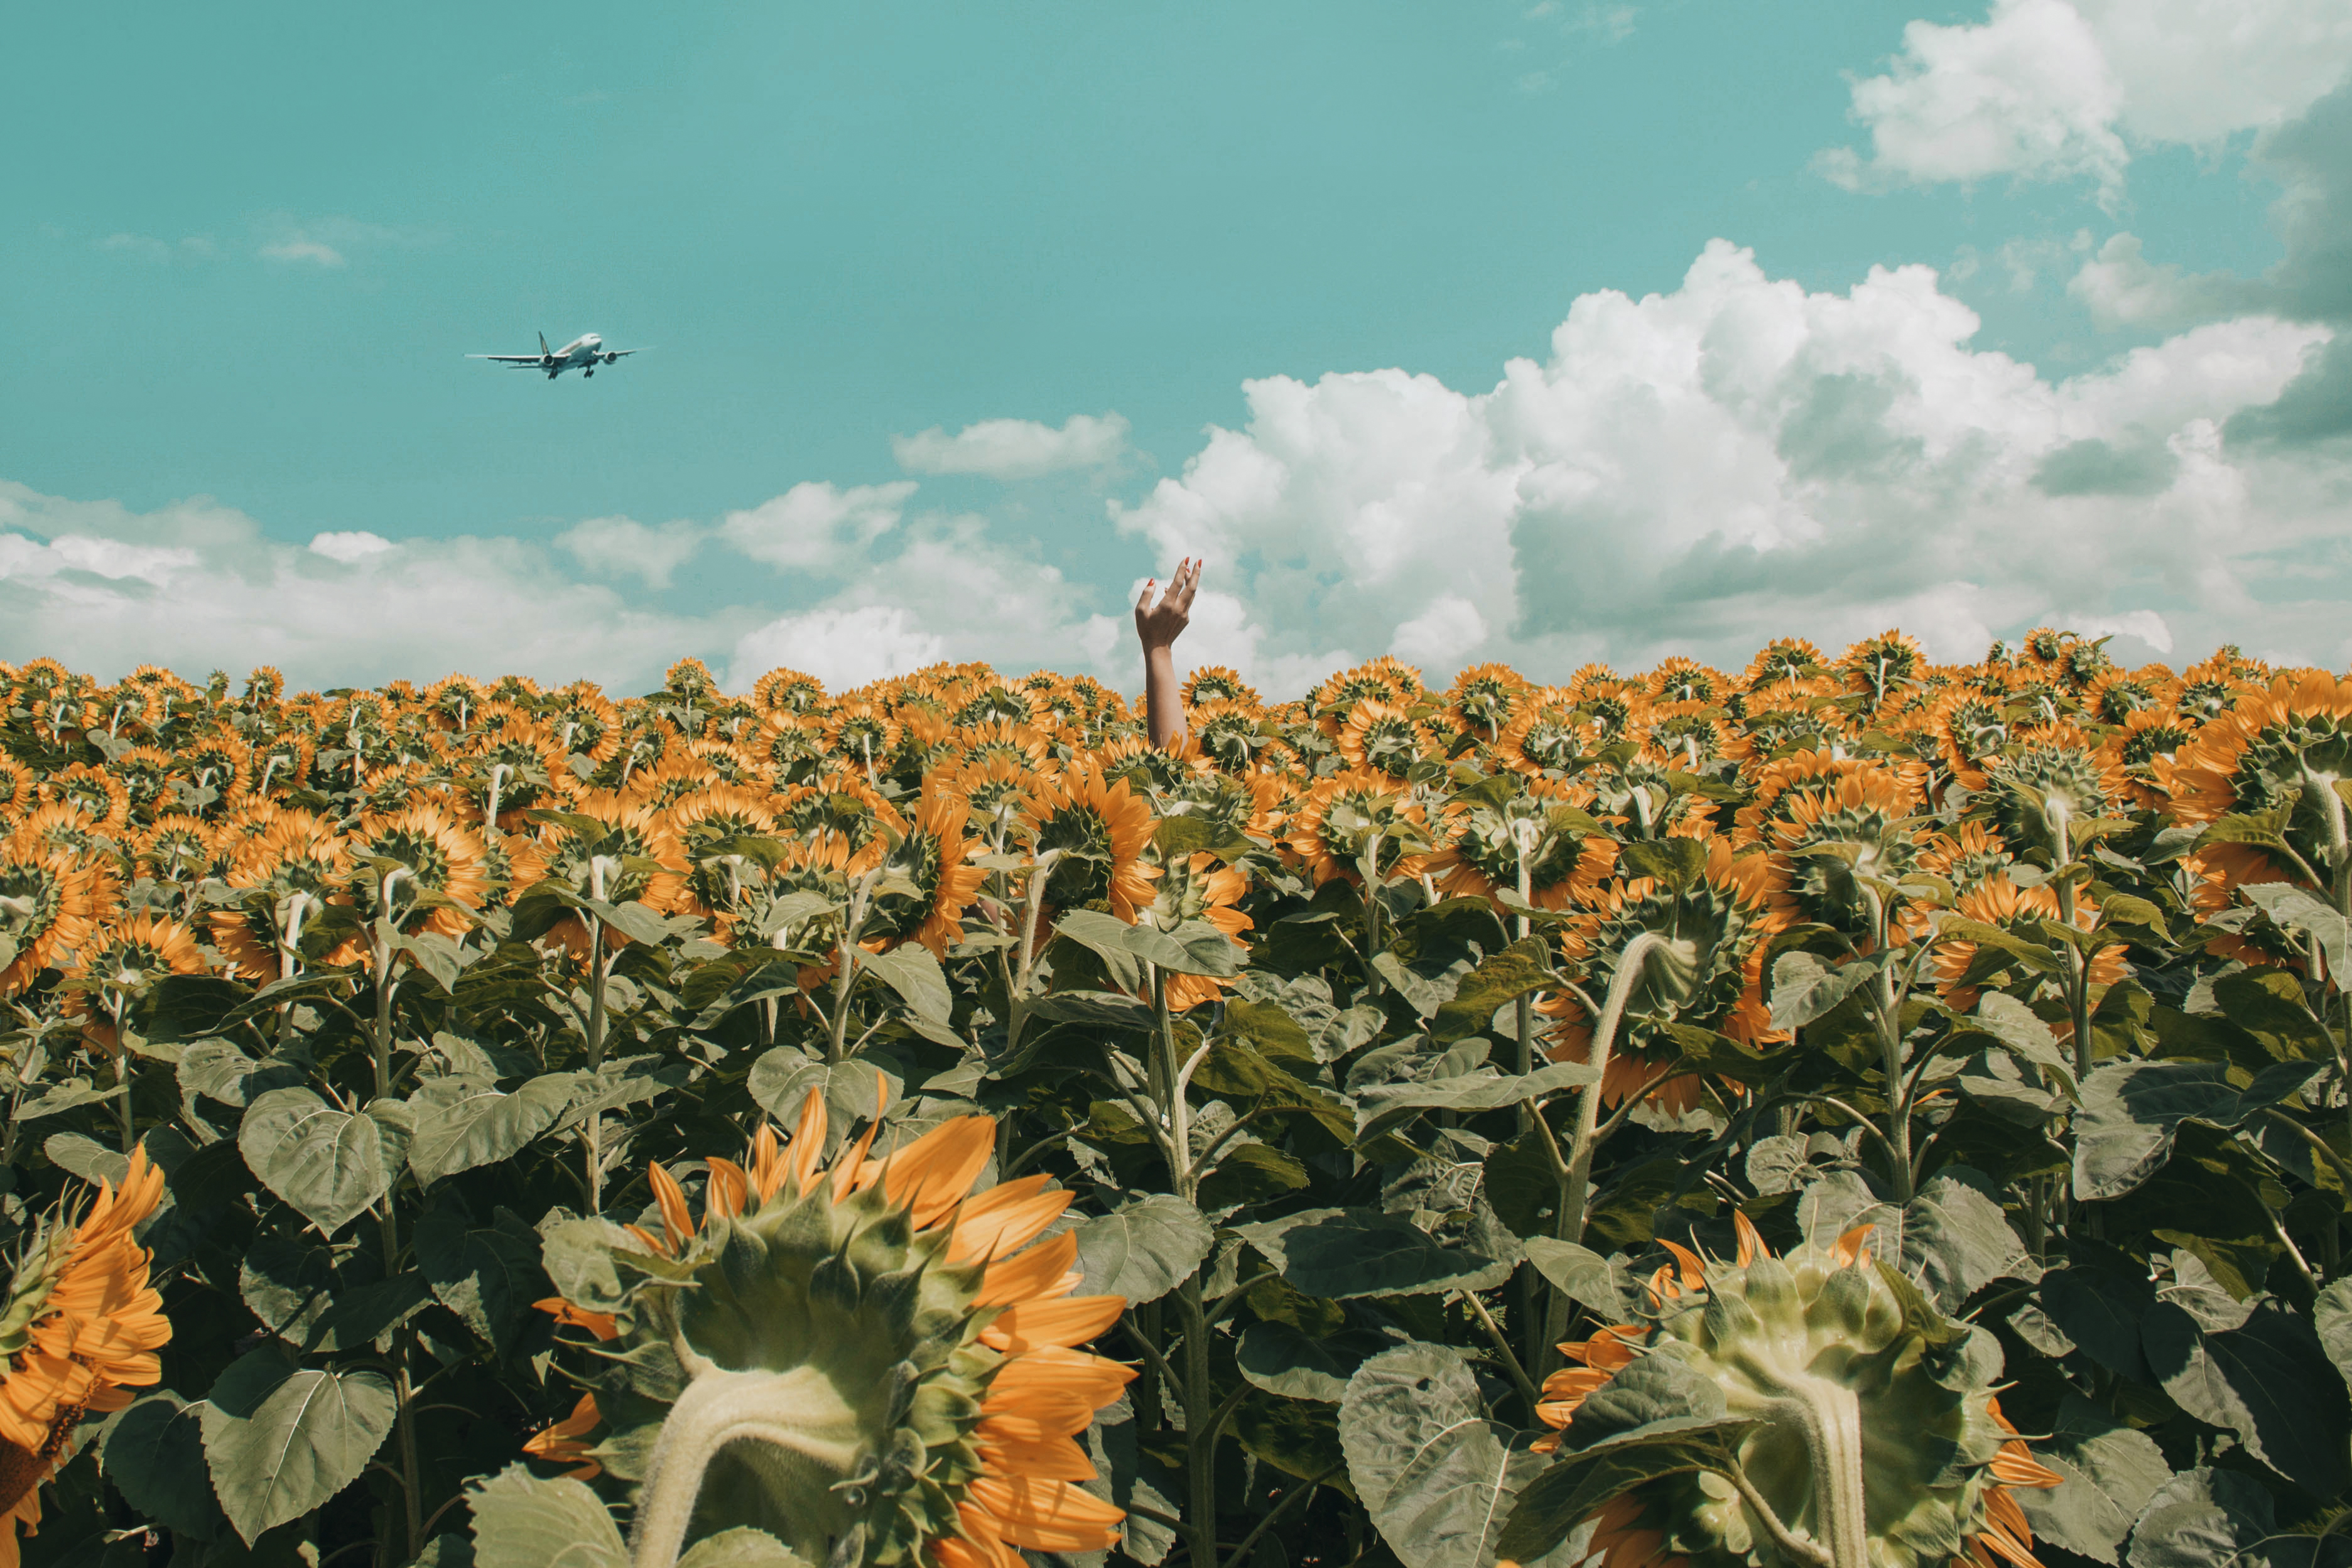 Fall Sunflowers Wallpaper 1000 Amazing Hand Reaching Out Photos 183 Pexels 183 Free